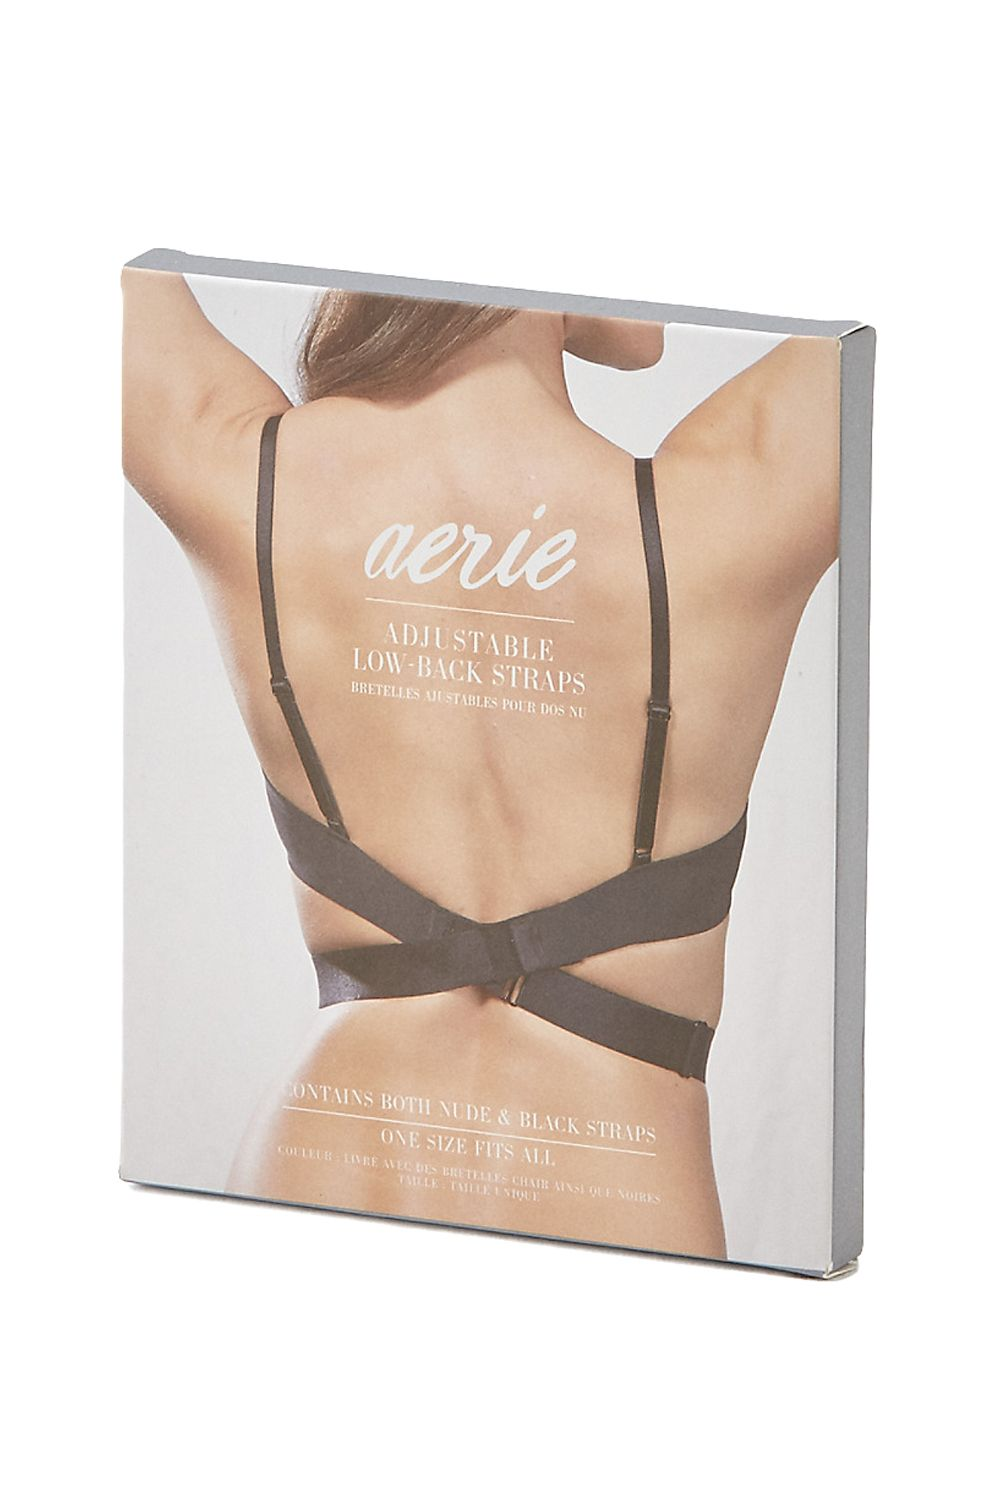 "<p>This two-pack of straps (considerately in nude and black) attaches to any bra if you want to get low, low, low, low.</p><p>Aerie Adjustable Low-Back Strap, $15.50, <a href=""https://www.ae.com/aerie-adjustable-low-back-strap-multi/aerie/s-prod/0735_4333_900"" target=""_blank"" data-tracking-id=""recirc-text-link"">ae.com</a>.</p>"